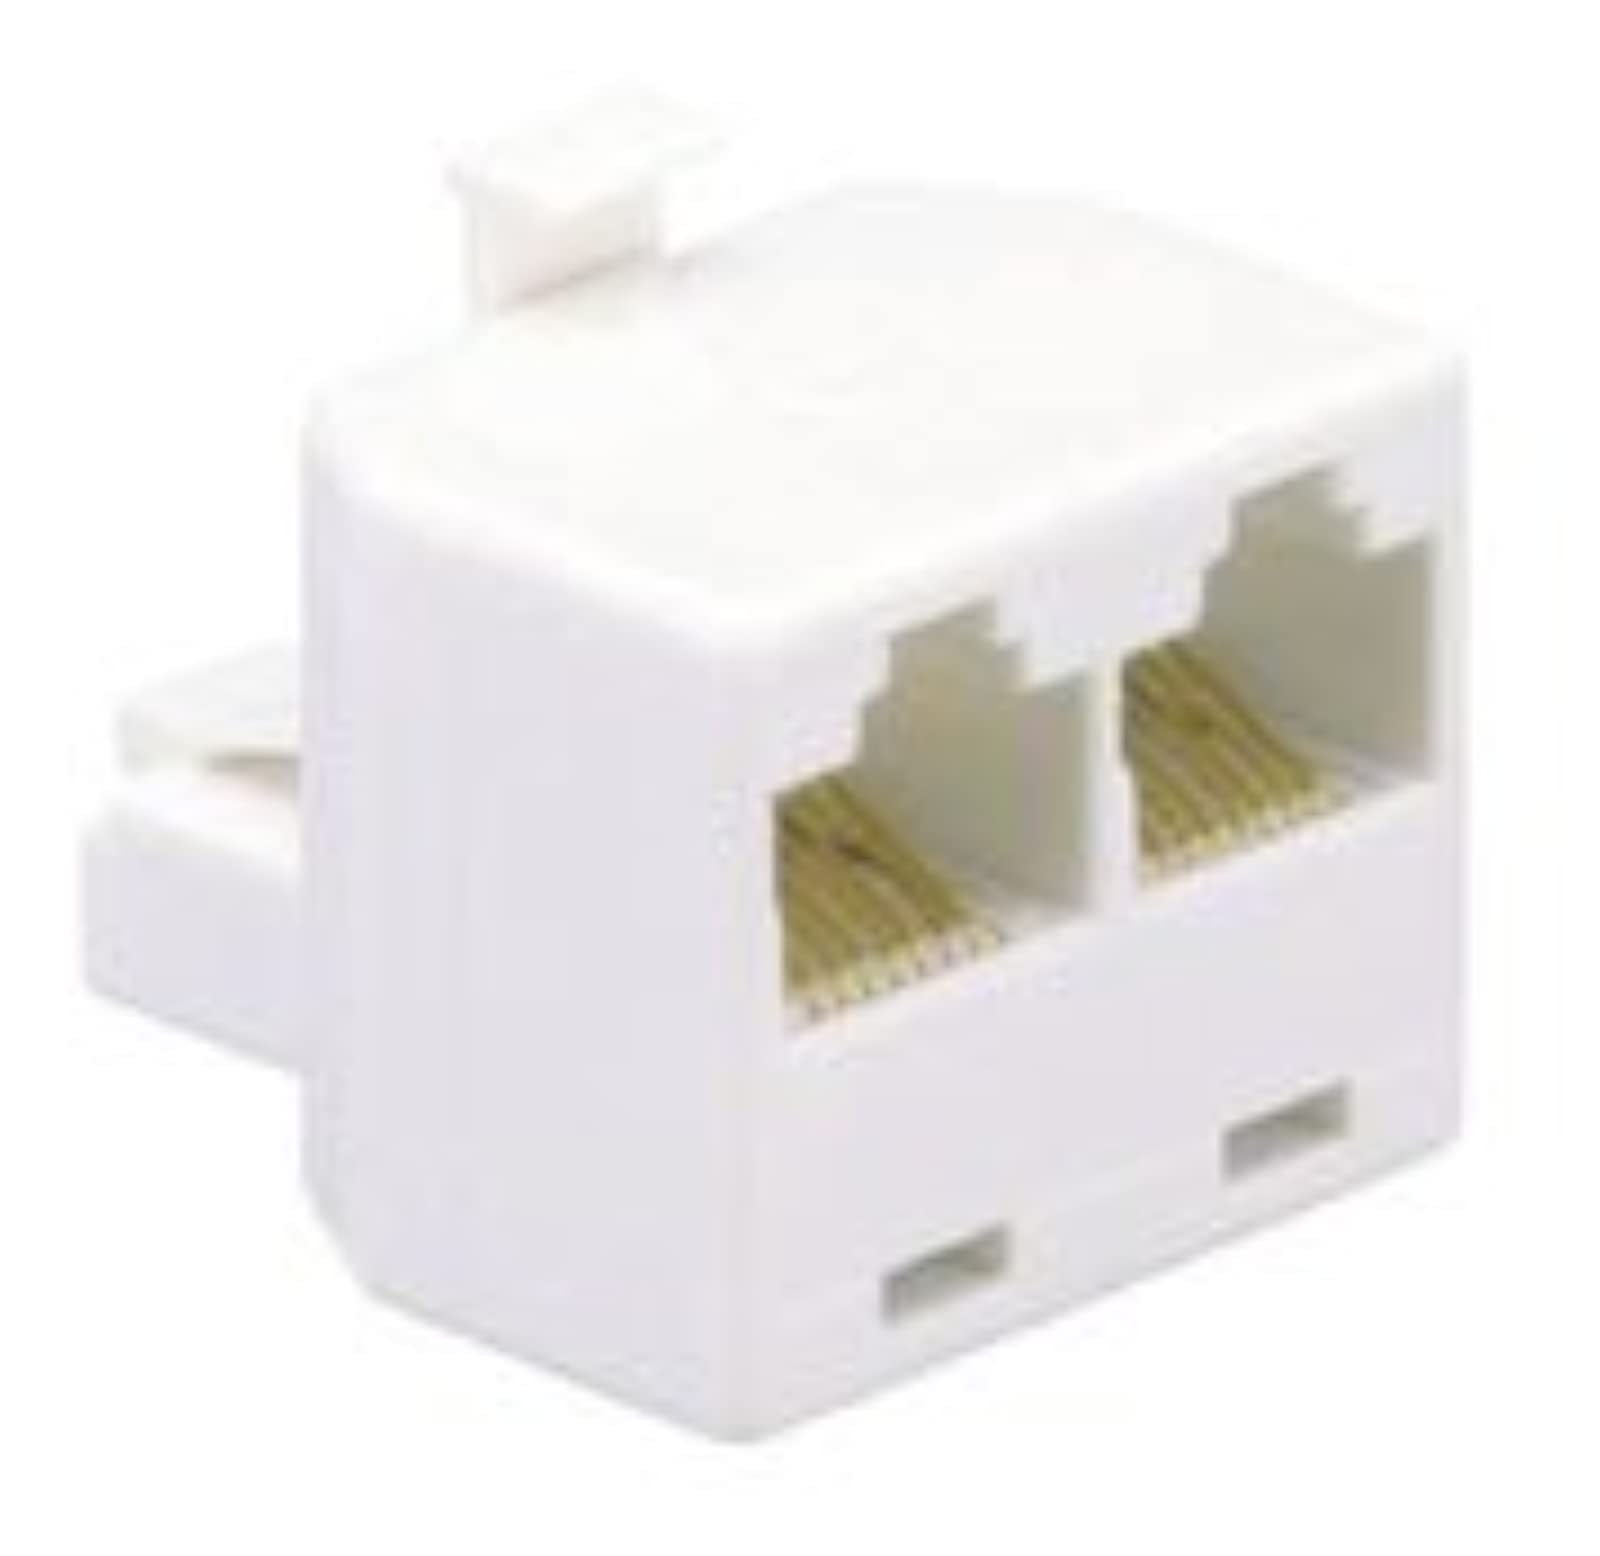 AT&T 91115 Four-Line Dual Outlet Adapter White Telephone 4